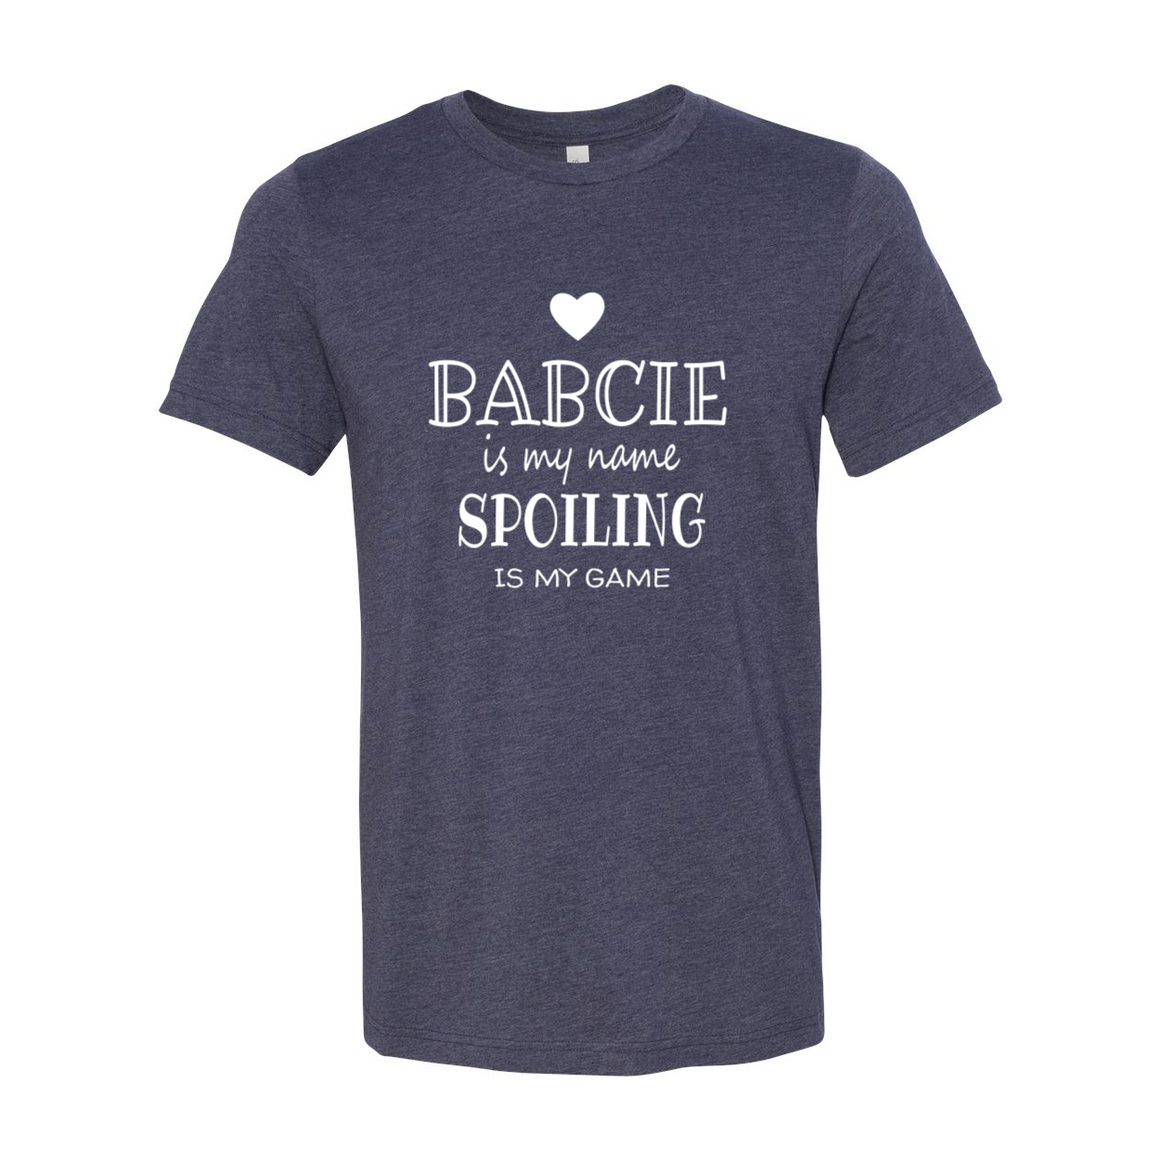 Babcie Is My Name Grandma Grandmother Tshirt